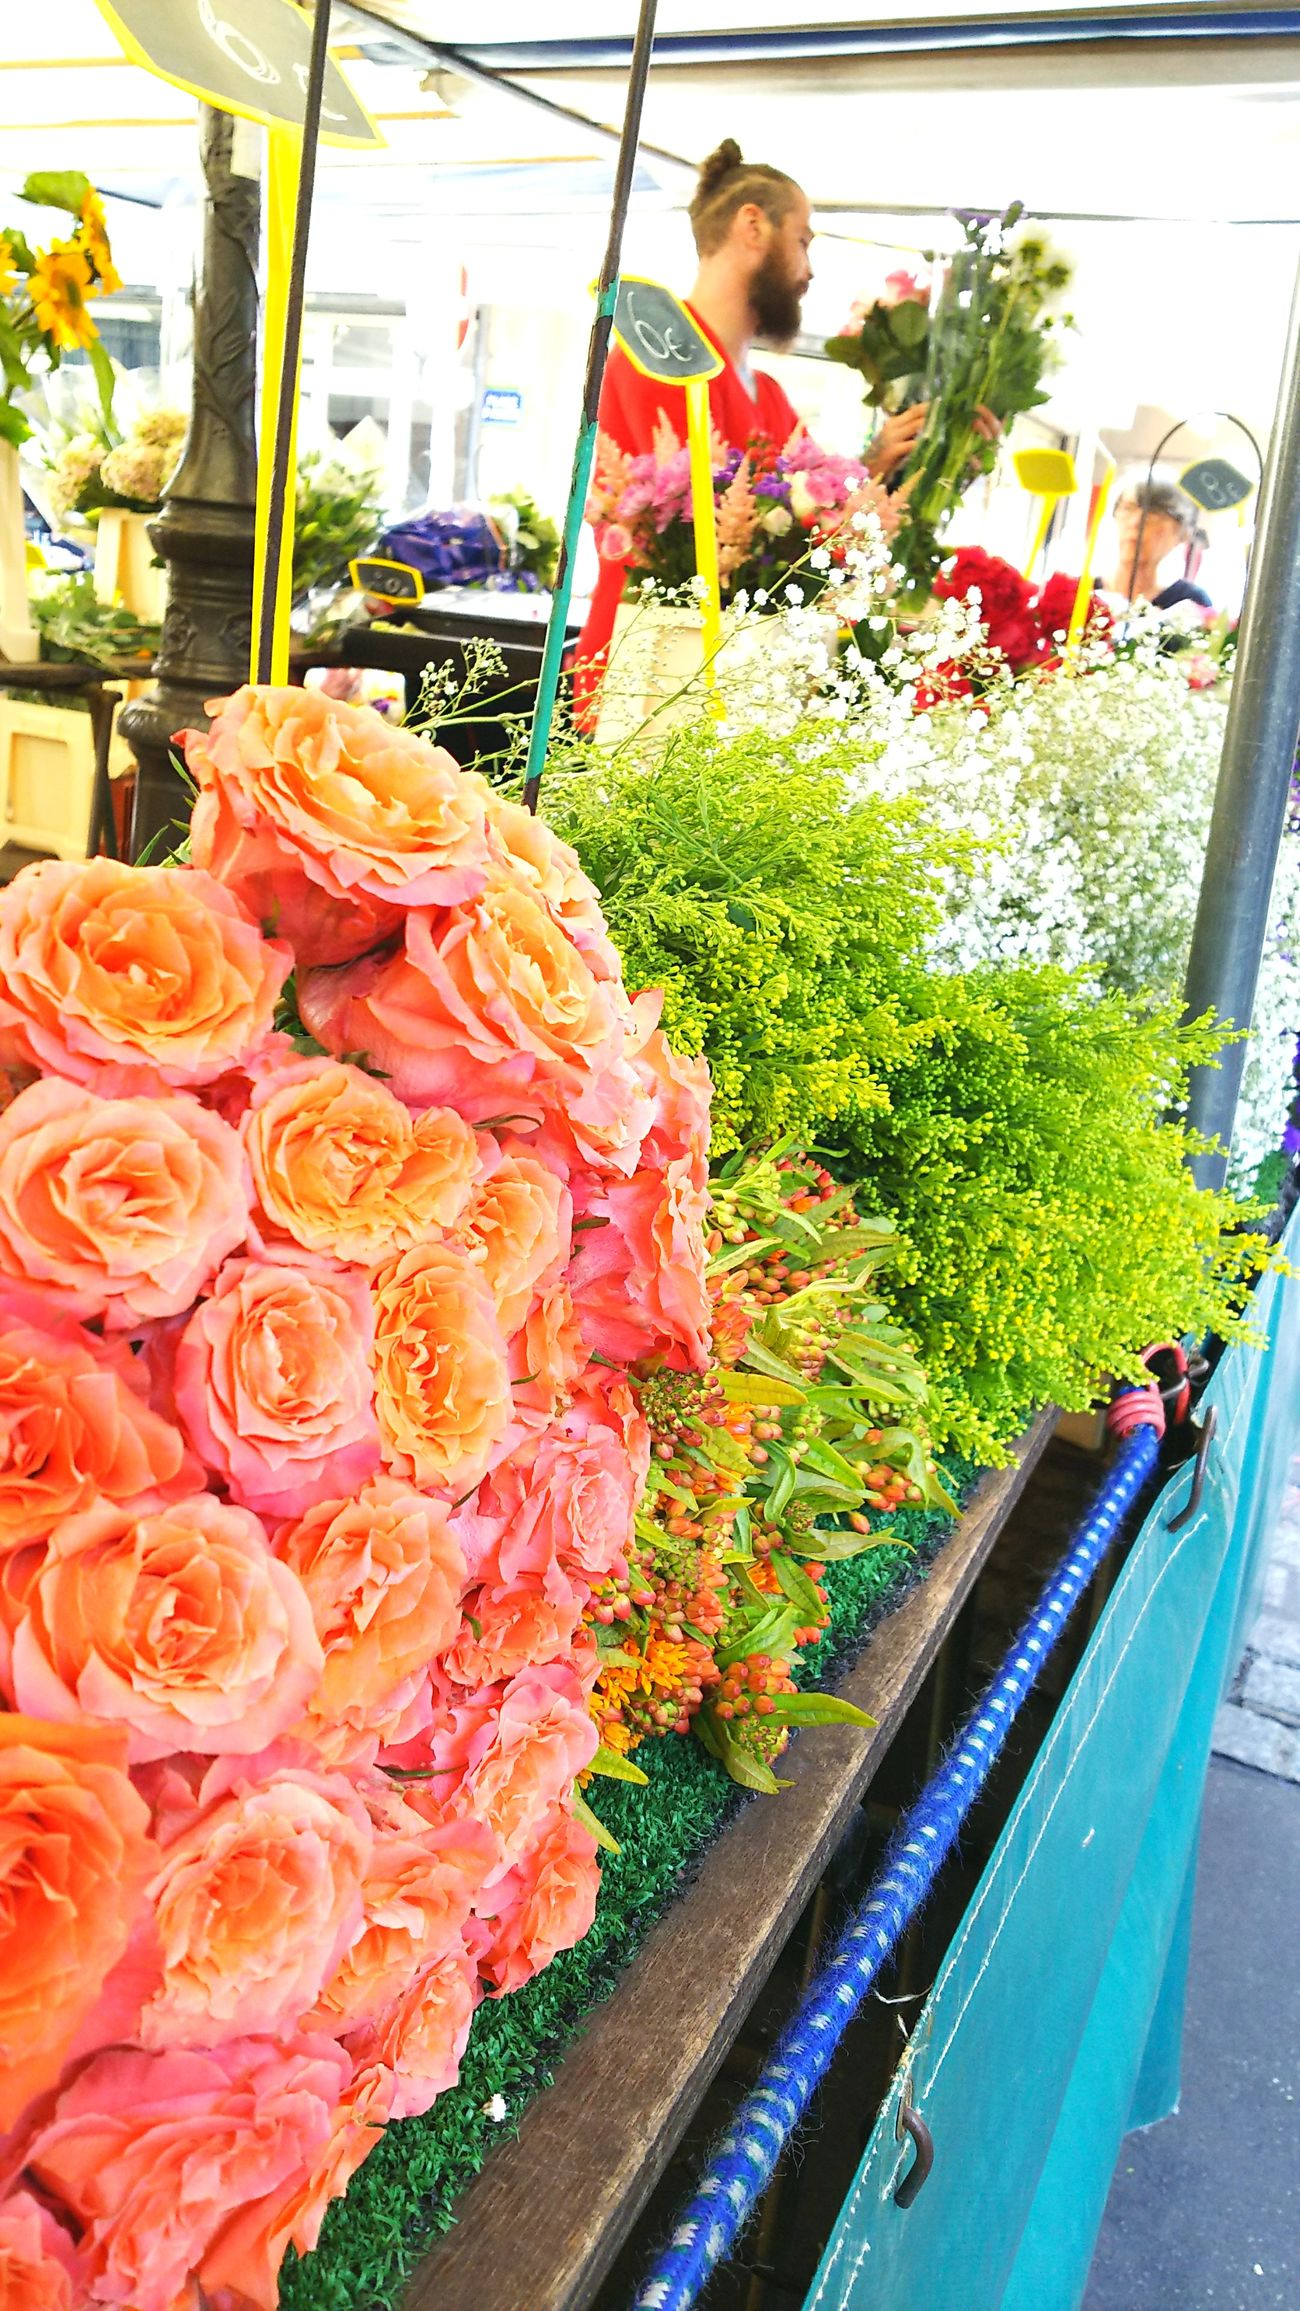 Food Freshness For Sale Food And Drink Market Retail  Variation Business Finance And Industry Choice Vegetable Healthy Eating Indoors  Day Price Tag Business No People Close-up Ready-to-eat Paris ❤ Paris Flower Roses かわいかったマルシェのバラ。腕いっぱいに抱えて歩きたいな。